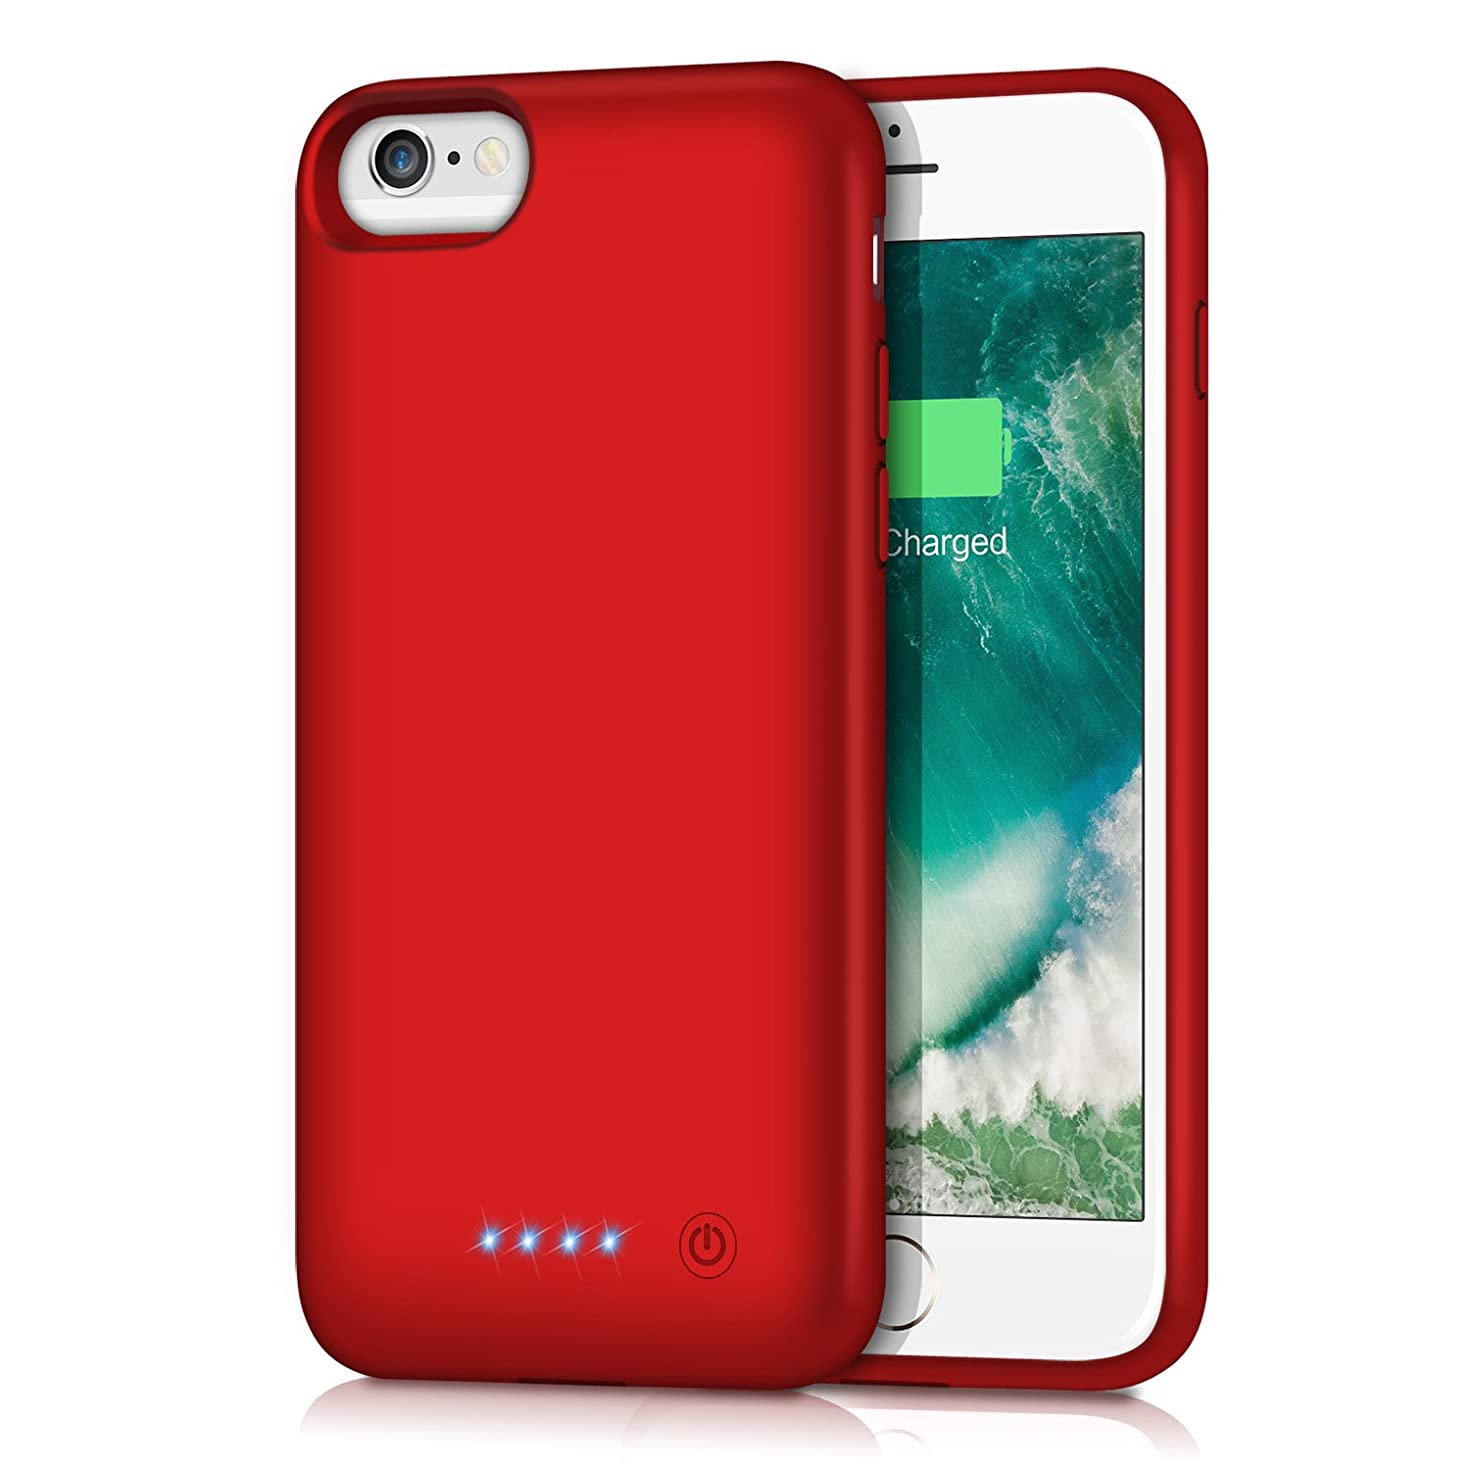 Battery Case for iPhone 6S / 6, Gixvdcu 6000mAh Rechargeable Protective Portable Charging Case for Apple iPhone 6 & 6S (4.7 Inch) Extended Charger Pack Power Bank - Red